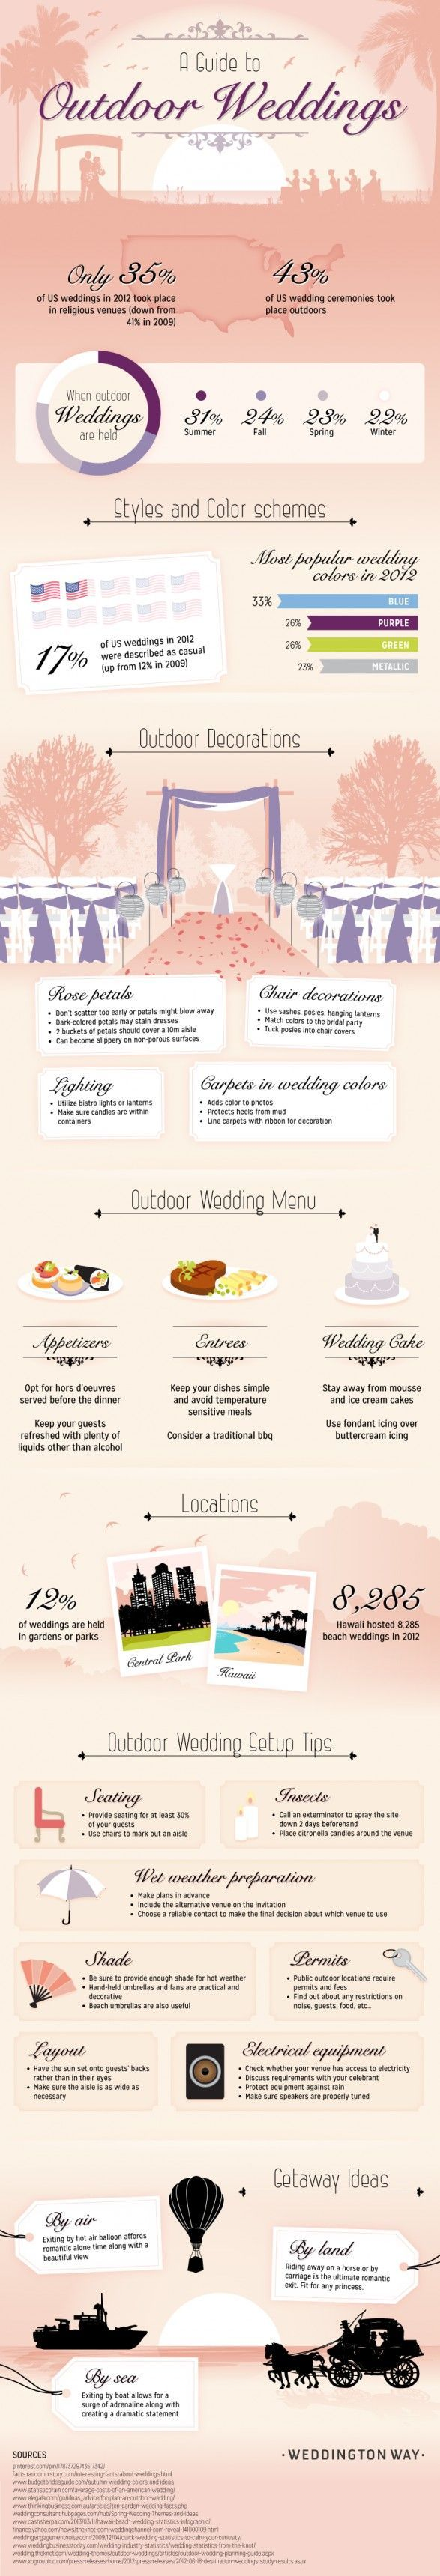 Having an Outdoor Wedding? Follow this handy guide from Weddington Way to determine the best type of decor, season, and set up for your special day.